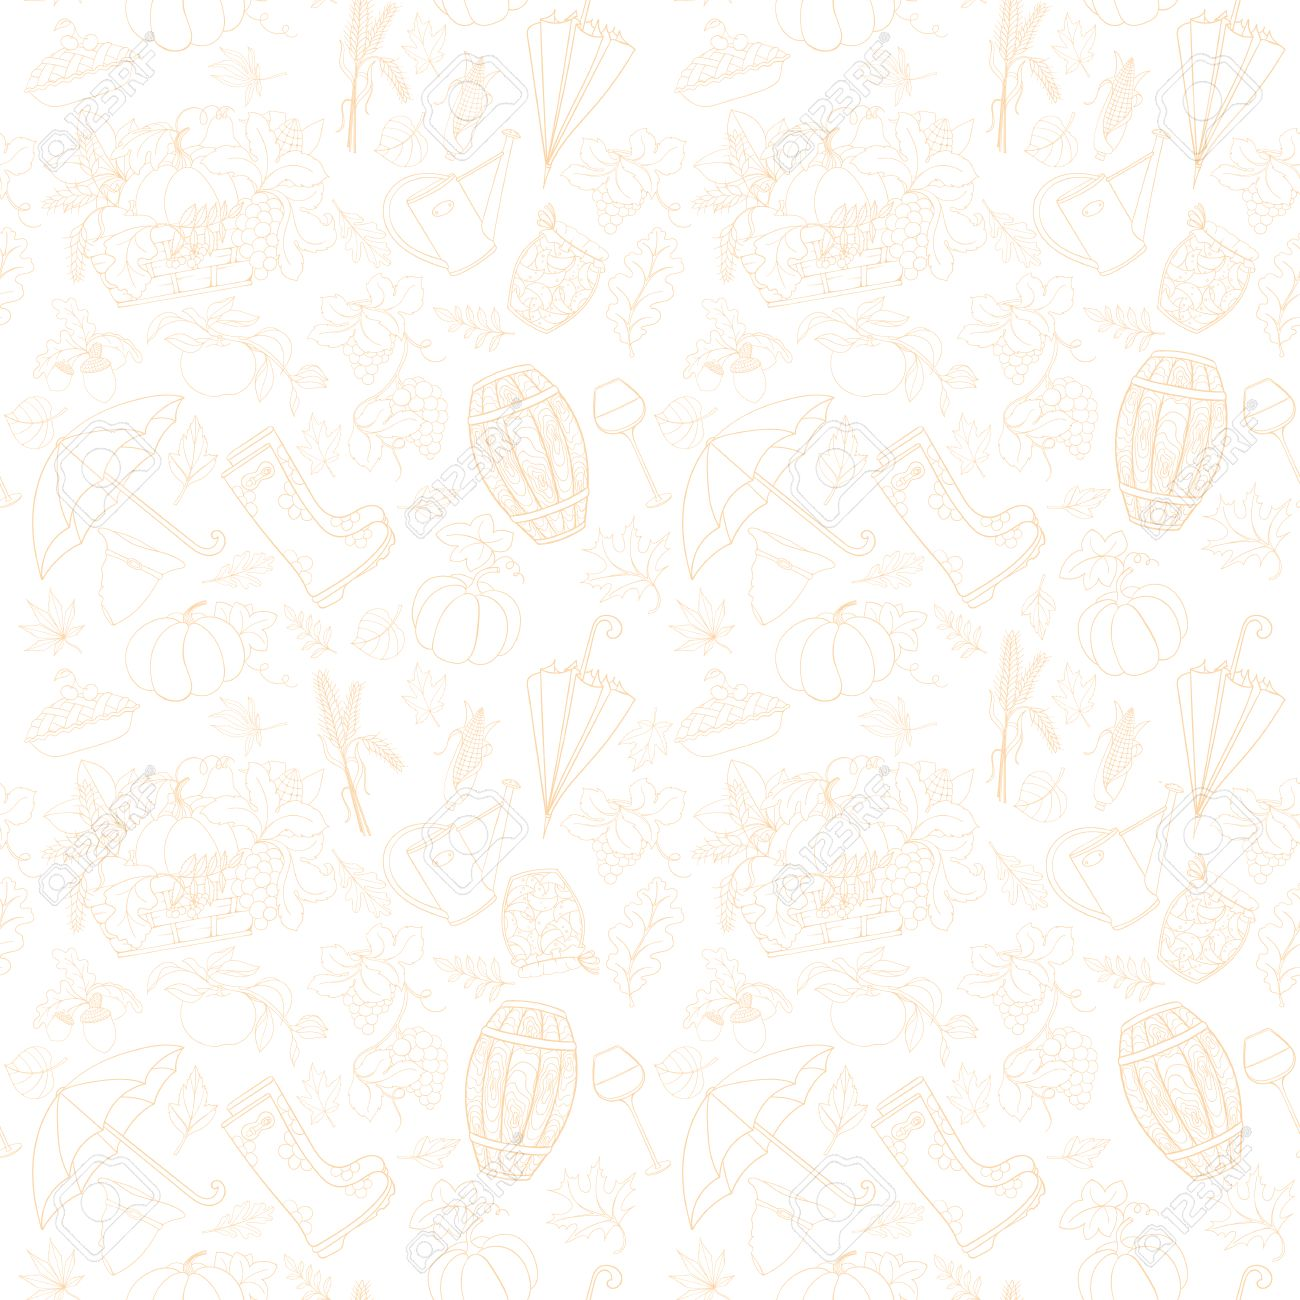 Autumn seamless pattern can be used for wallpaper, website background, wrapping paper. Autumn